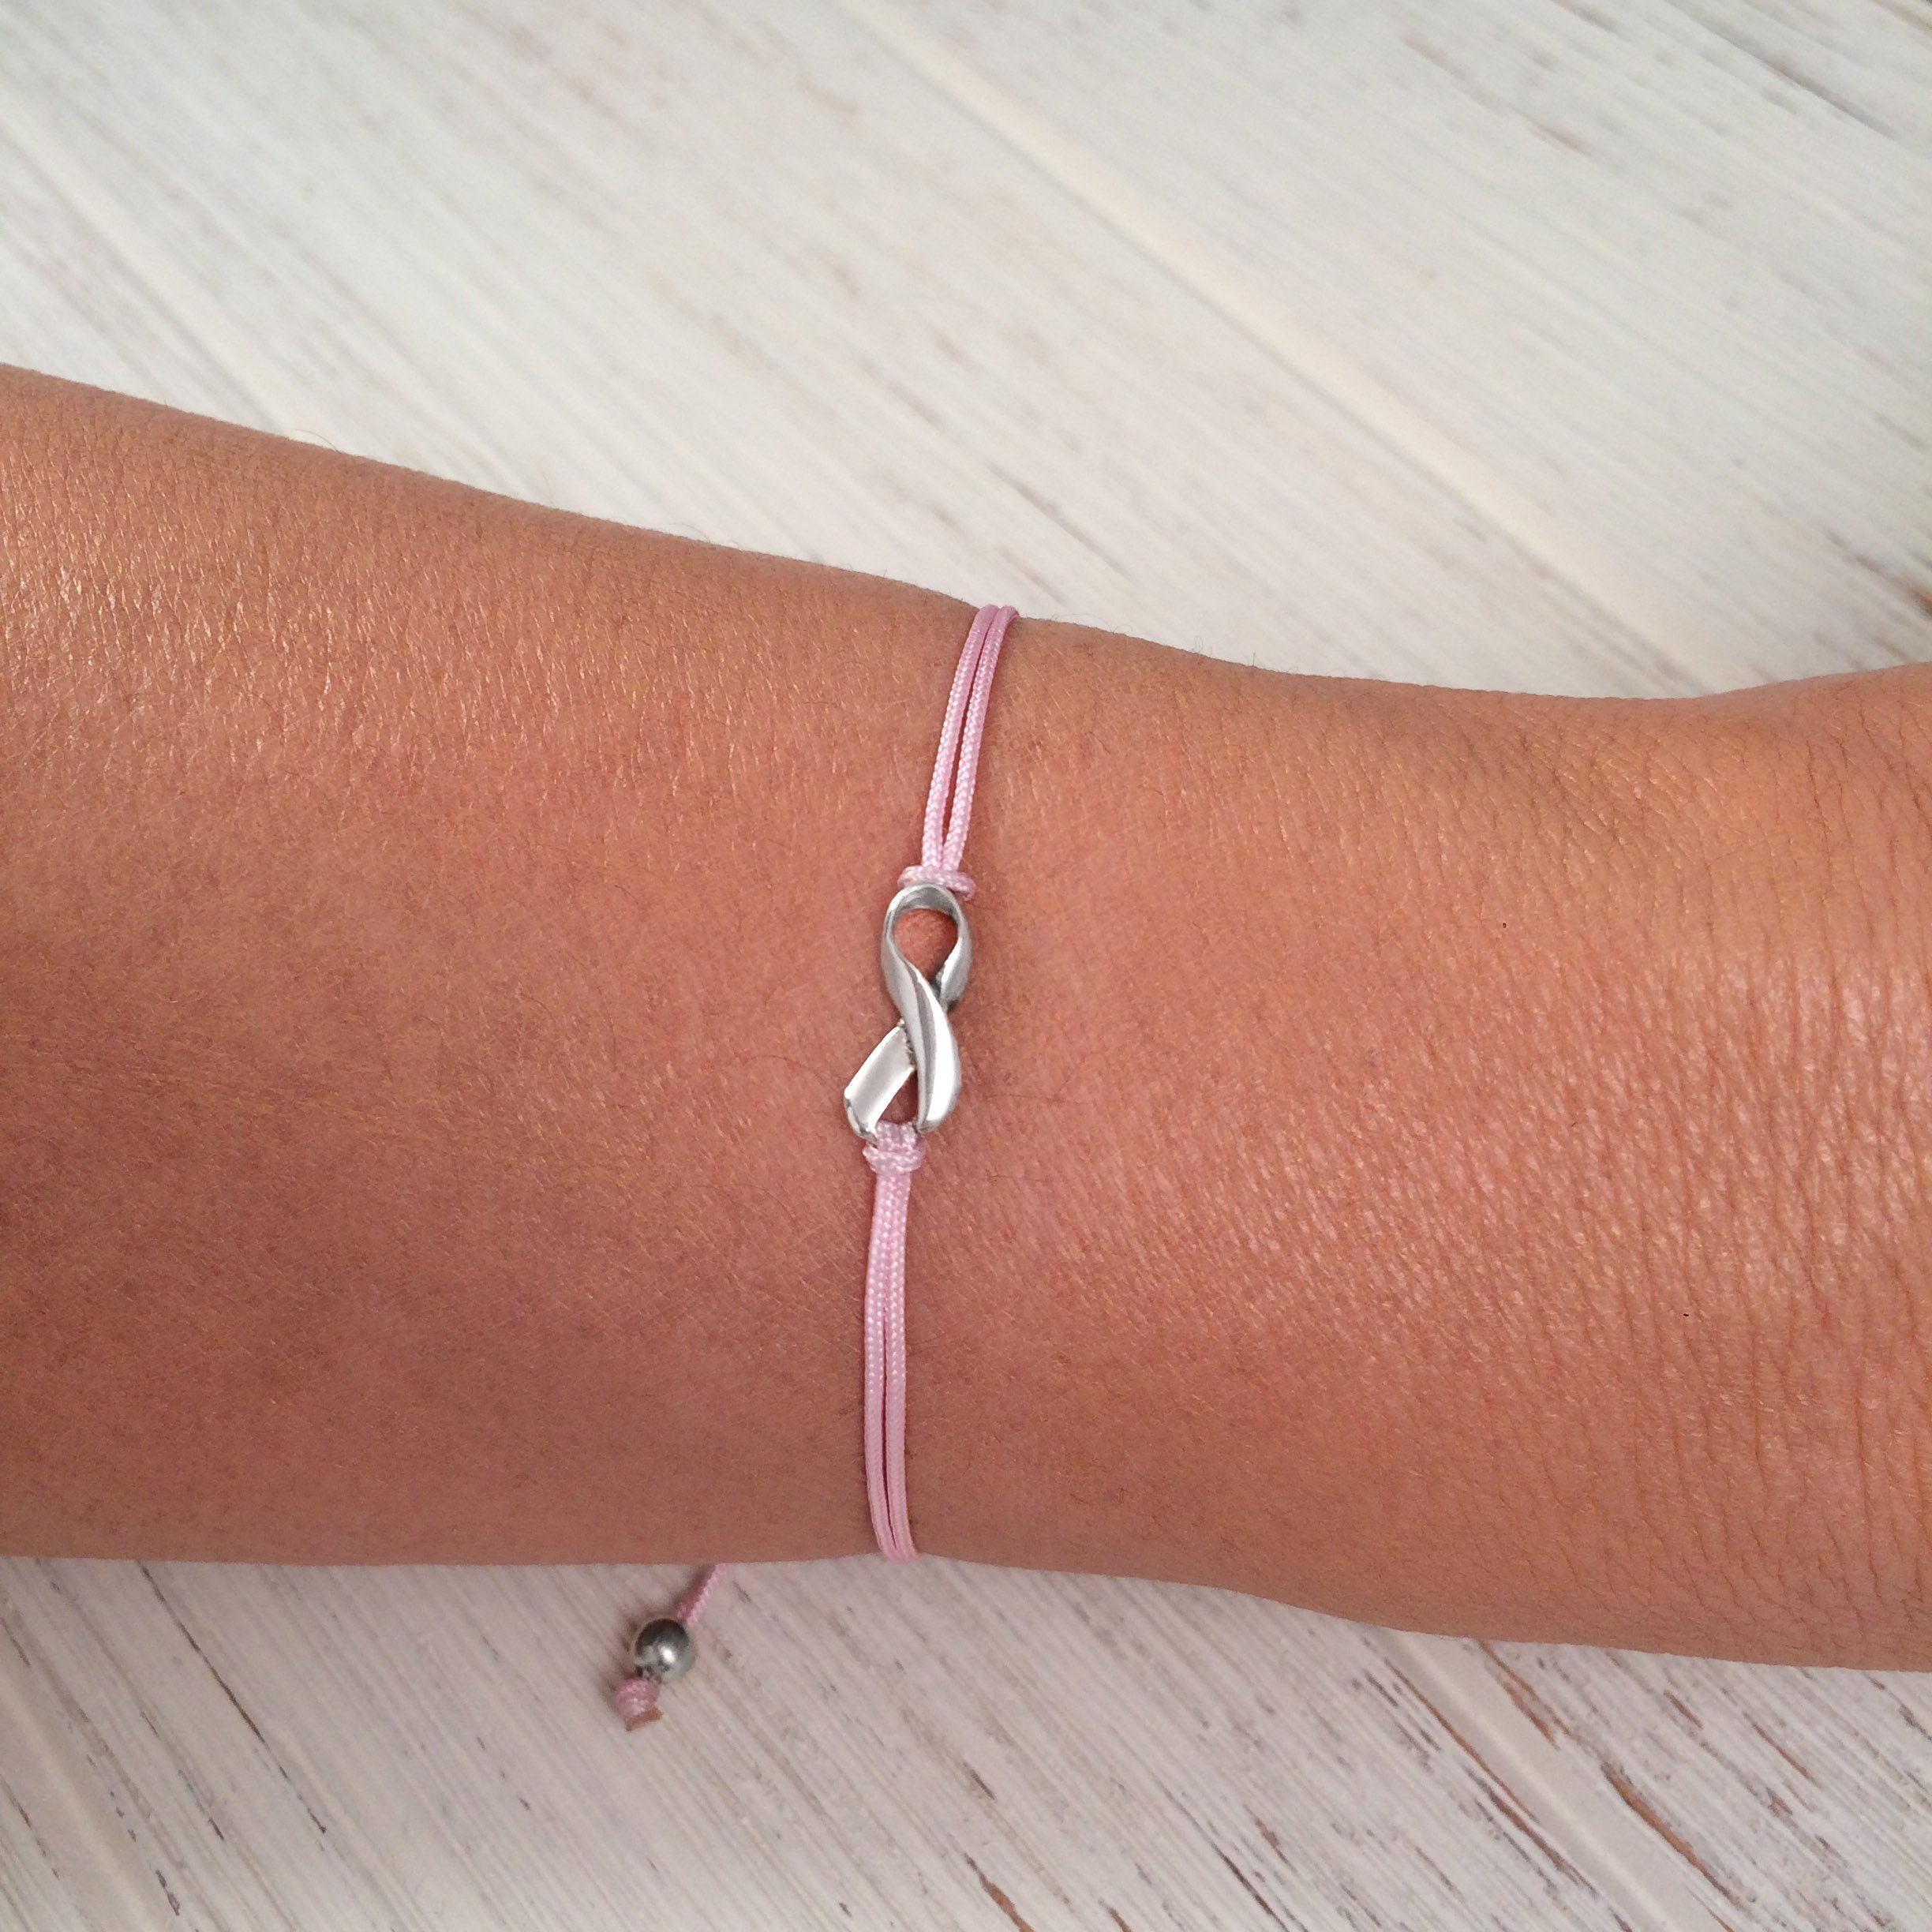 Pink, Small Sterling Silver 925 Ribbon Shaped Charm Bracelet, Breast Cancer Awareness, Friendship Support Bracelet, Adjustable Thread Cord, Handmade in Peru by Claudia Lira by Claudia Lira Joyas